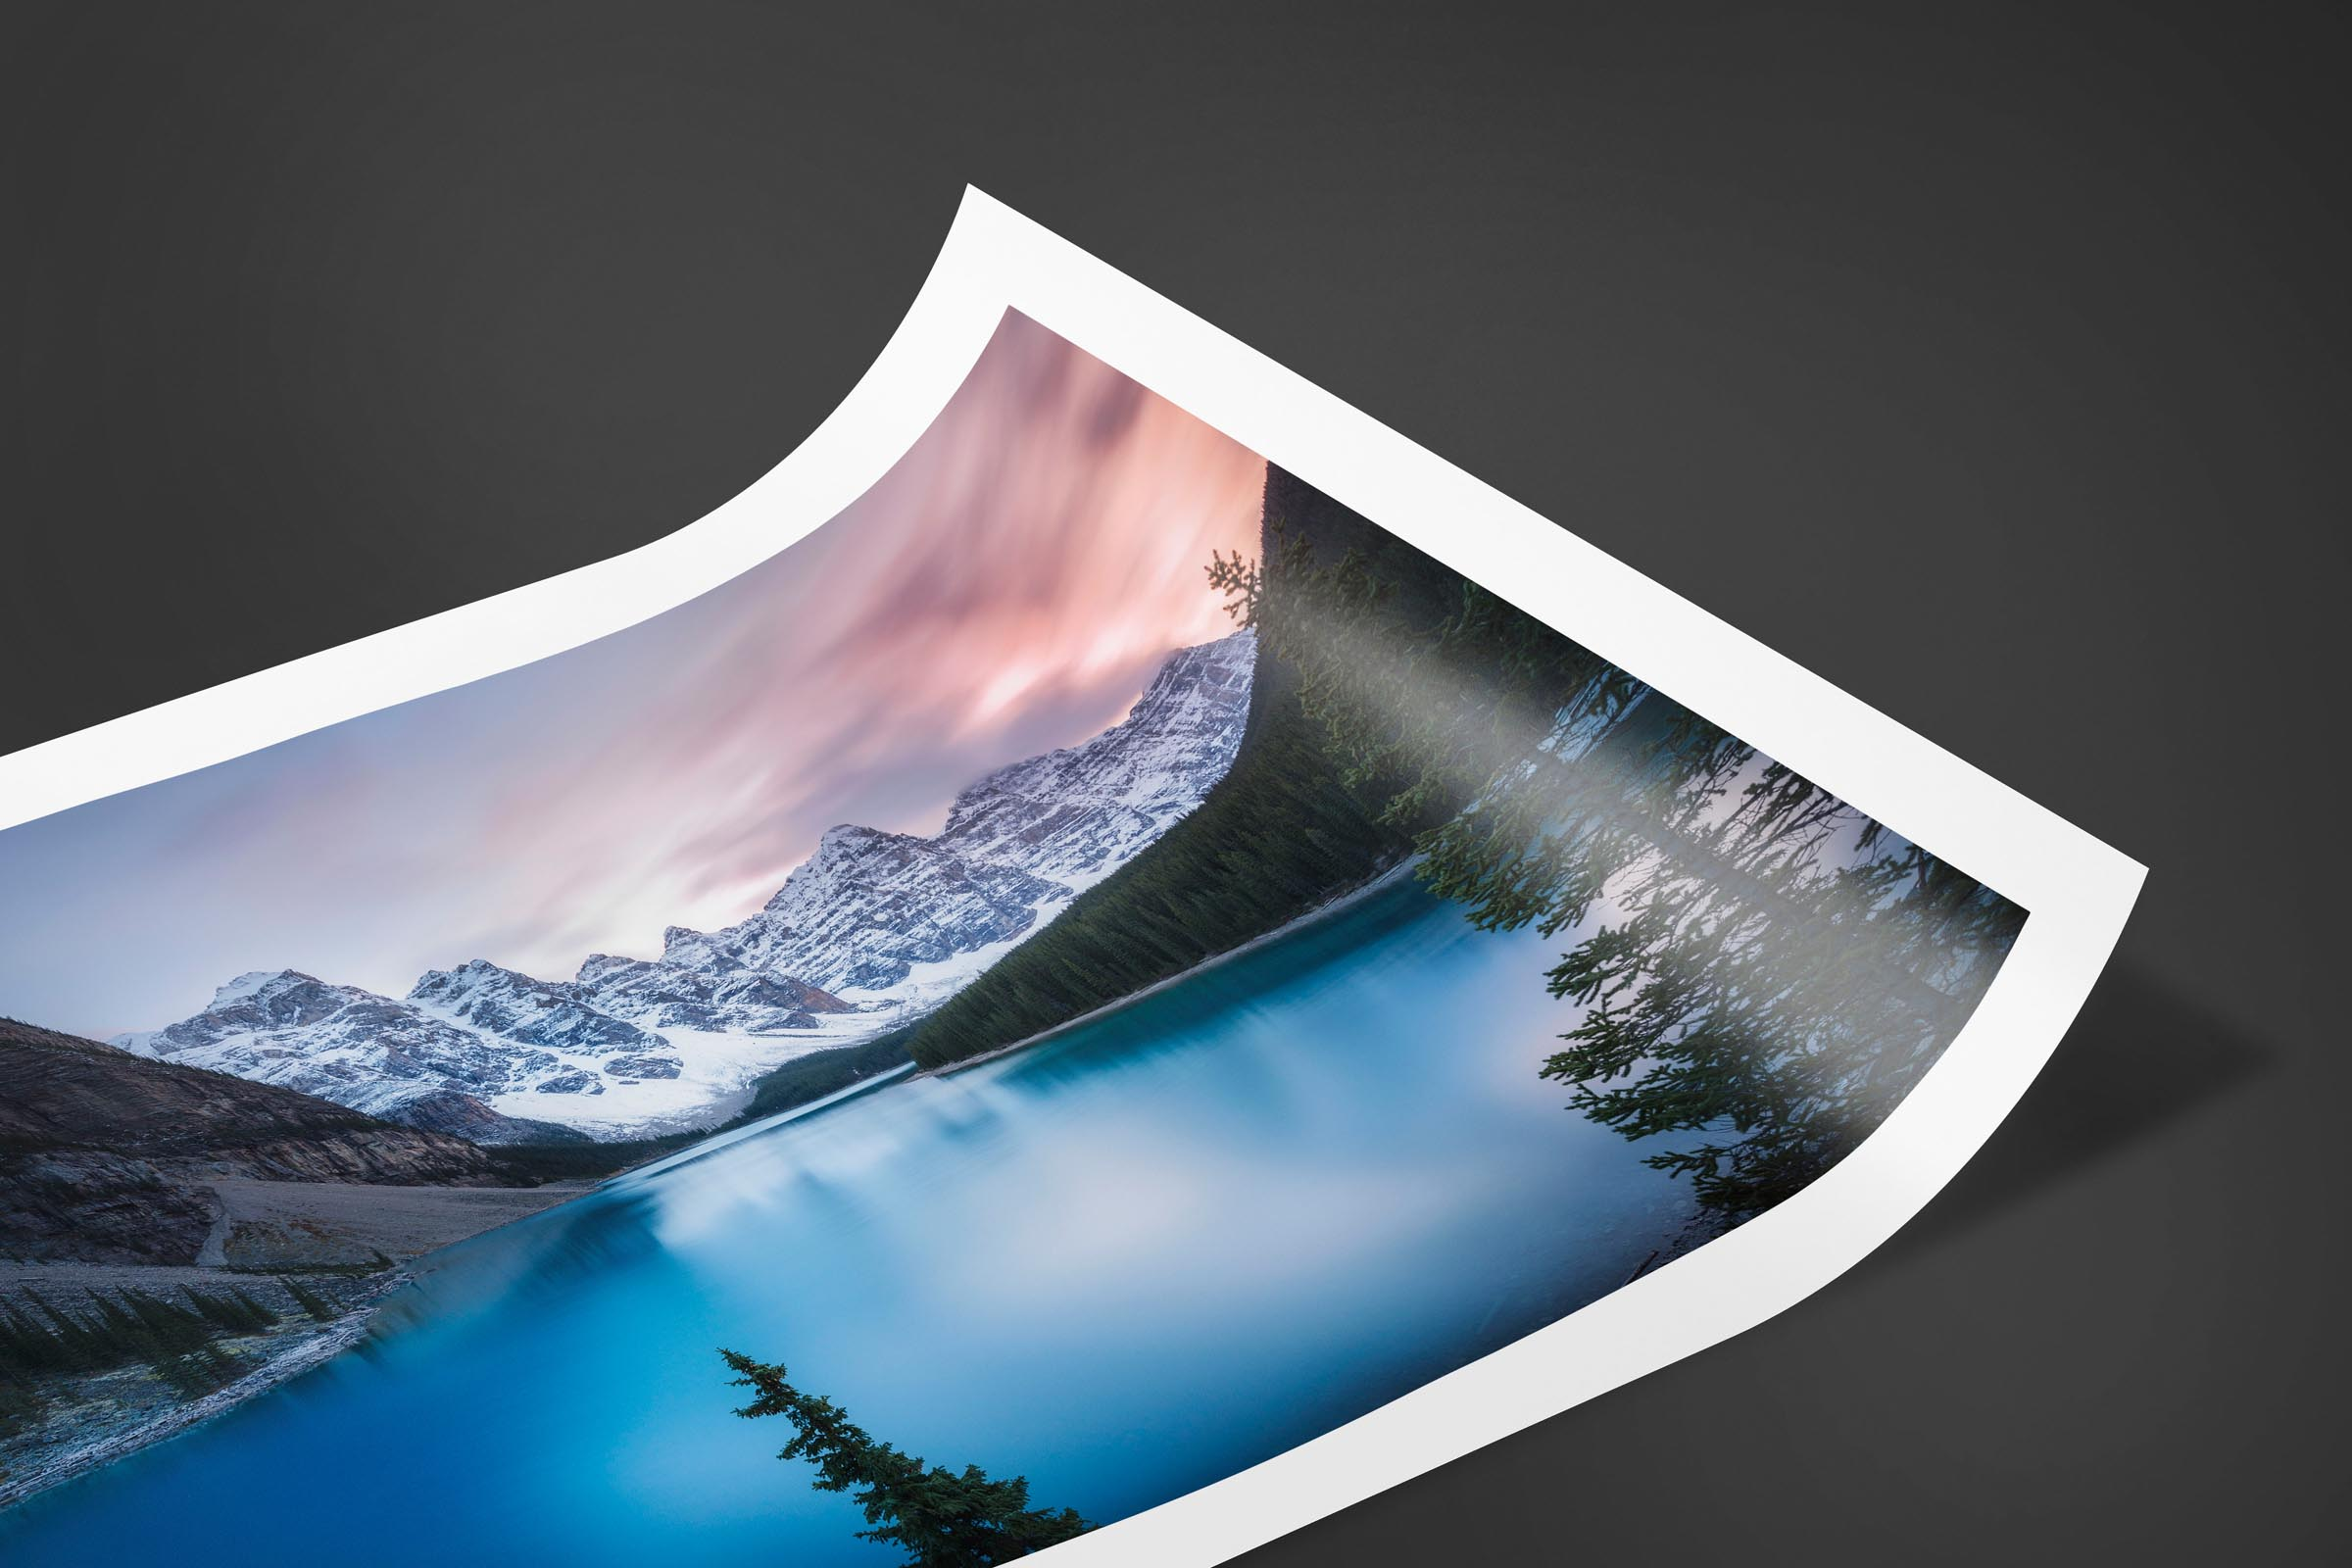 Fine art limited edition print of Moraine Lake in Banff, Canada by Brent Goldman Photography